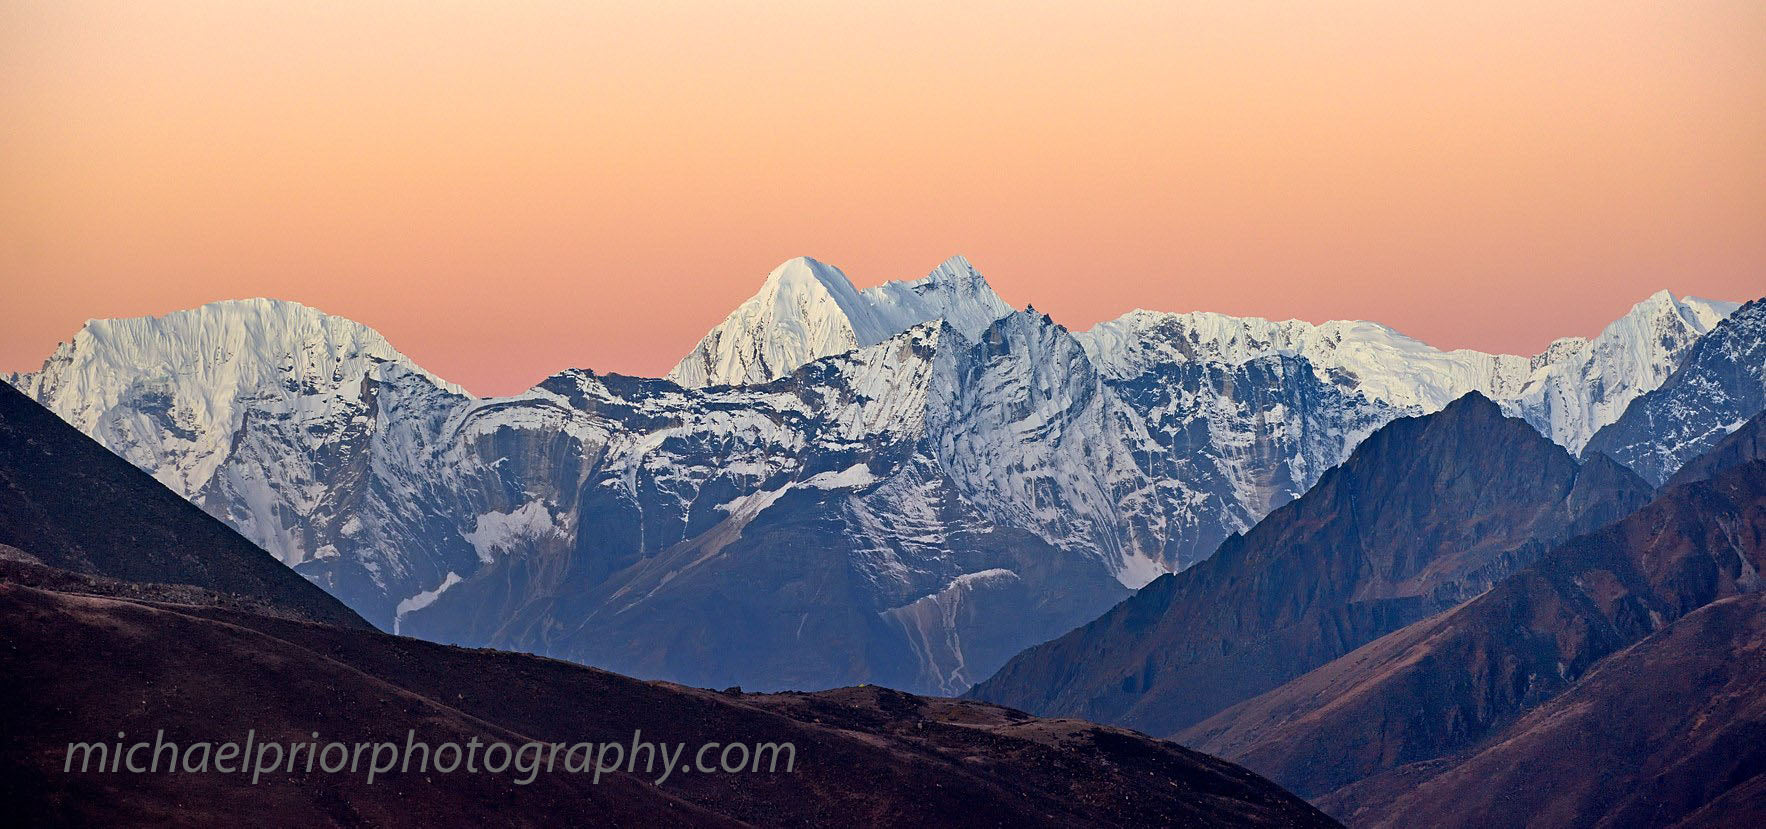 Himalaya Sunrise - Michael Prior Photography